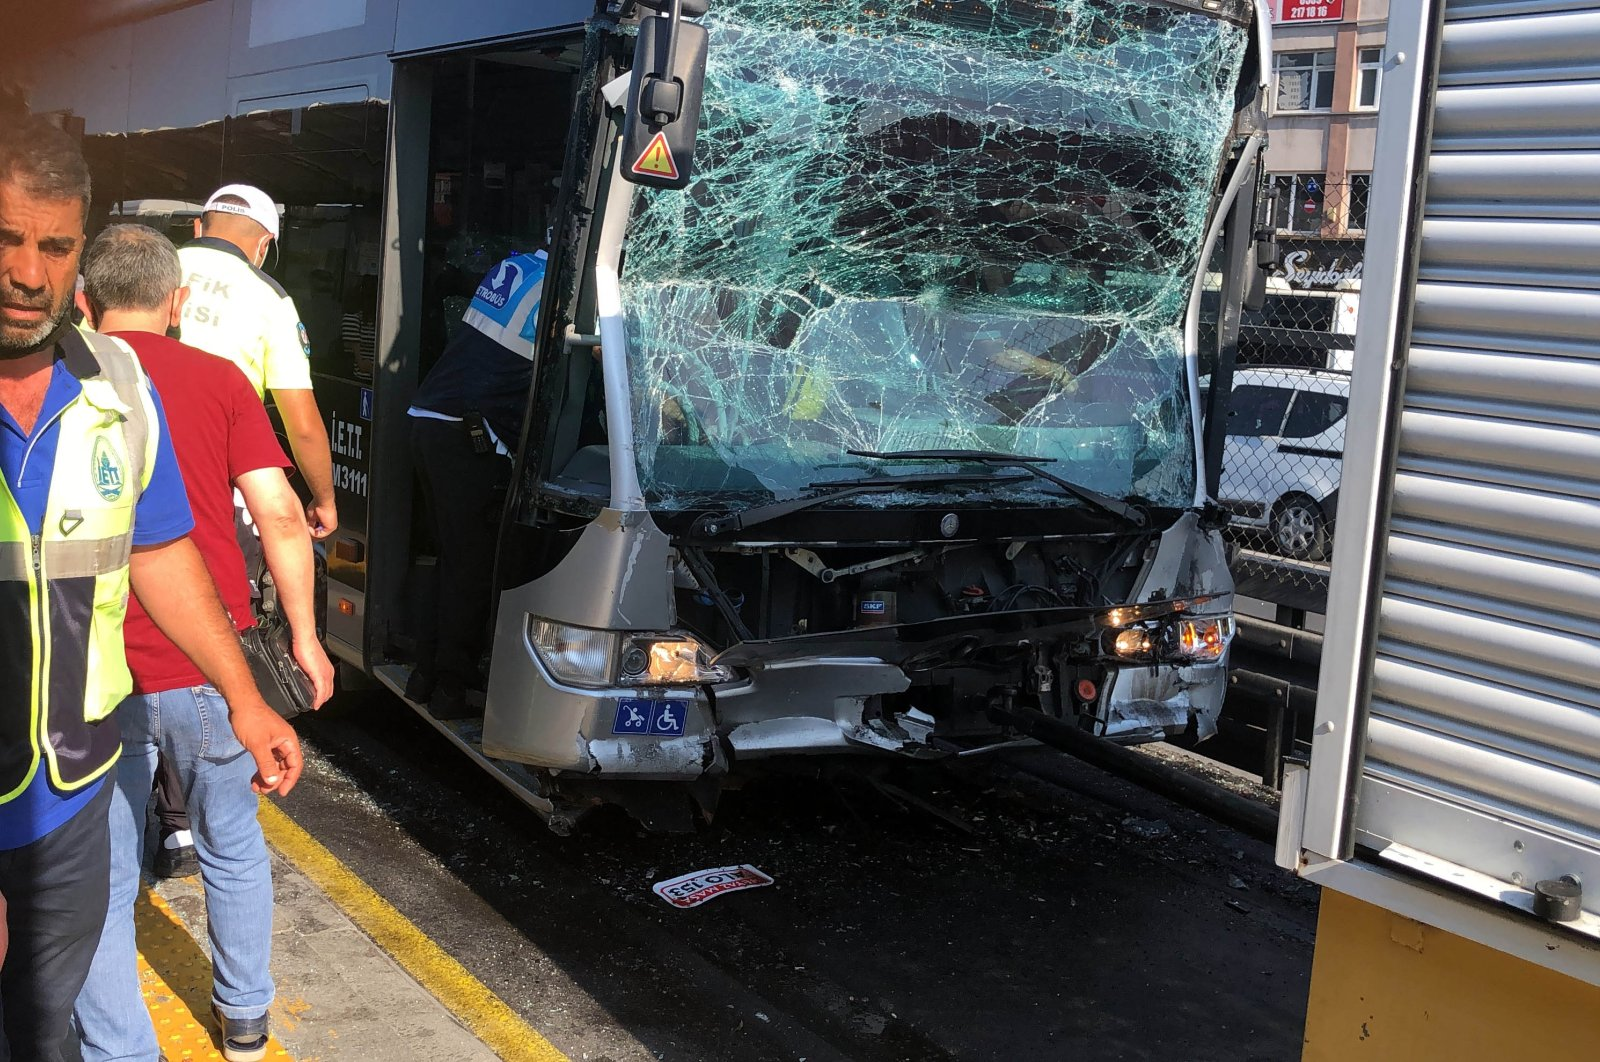 A view of the crashed metrobus, in Istanbul, Turkey, July 5, 2021. (DHA PHOTO)